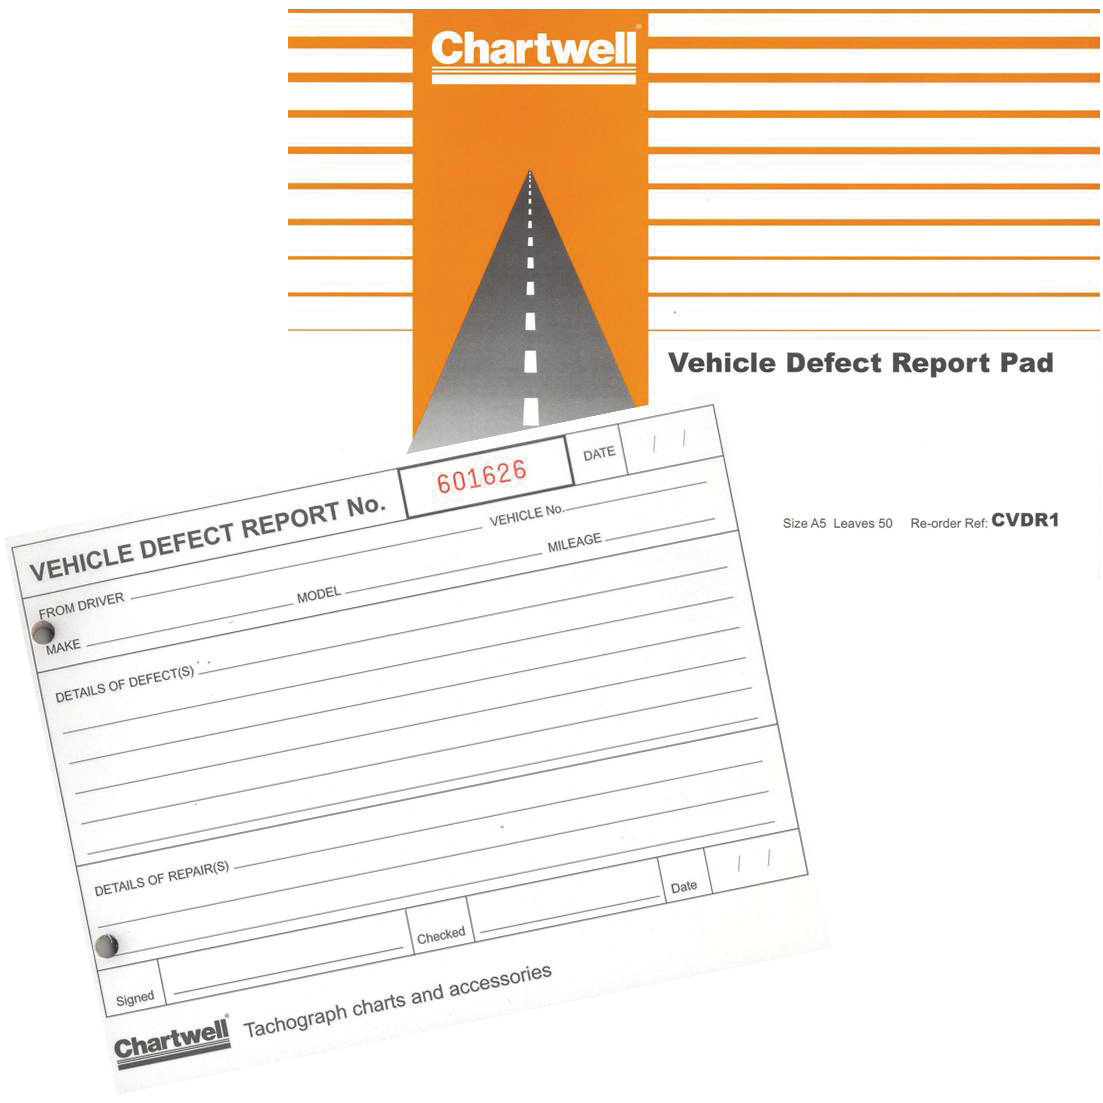 Vehicle Equipment / Supplies Chartwell Tachograph Vehicle Defect Report Pad 50 Sheets Ref CVDR1